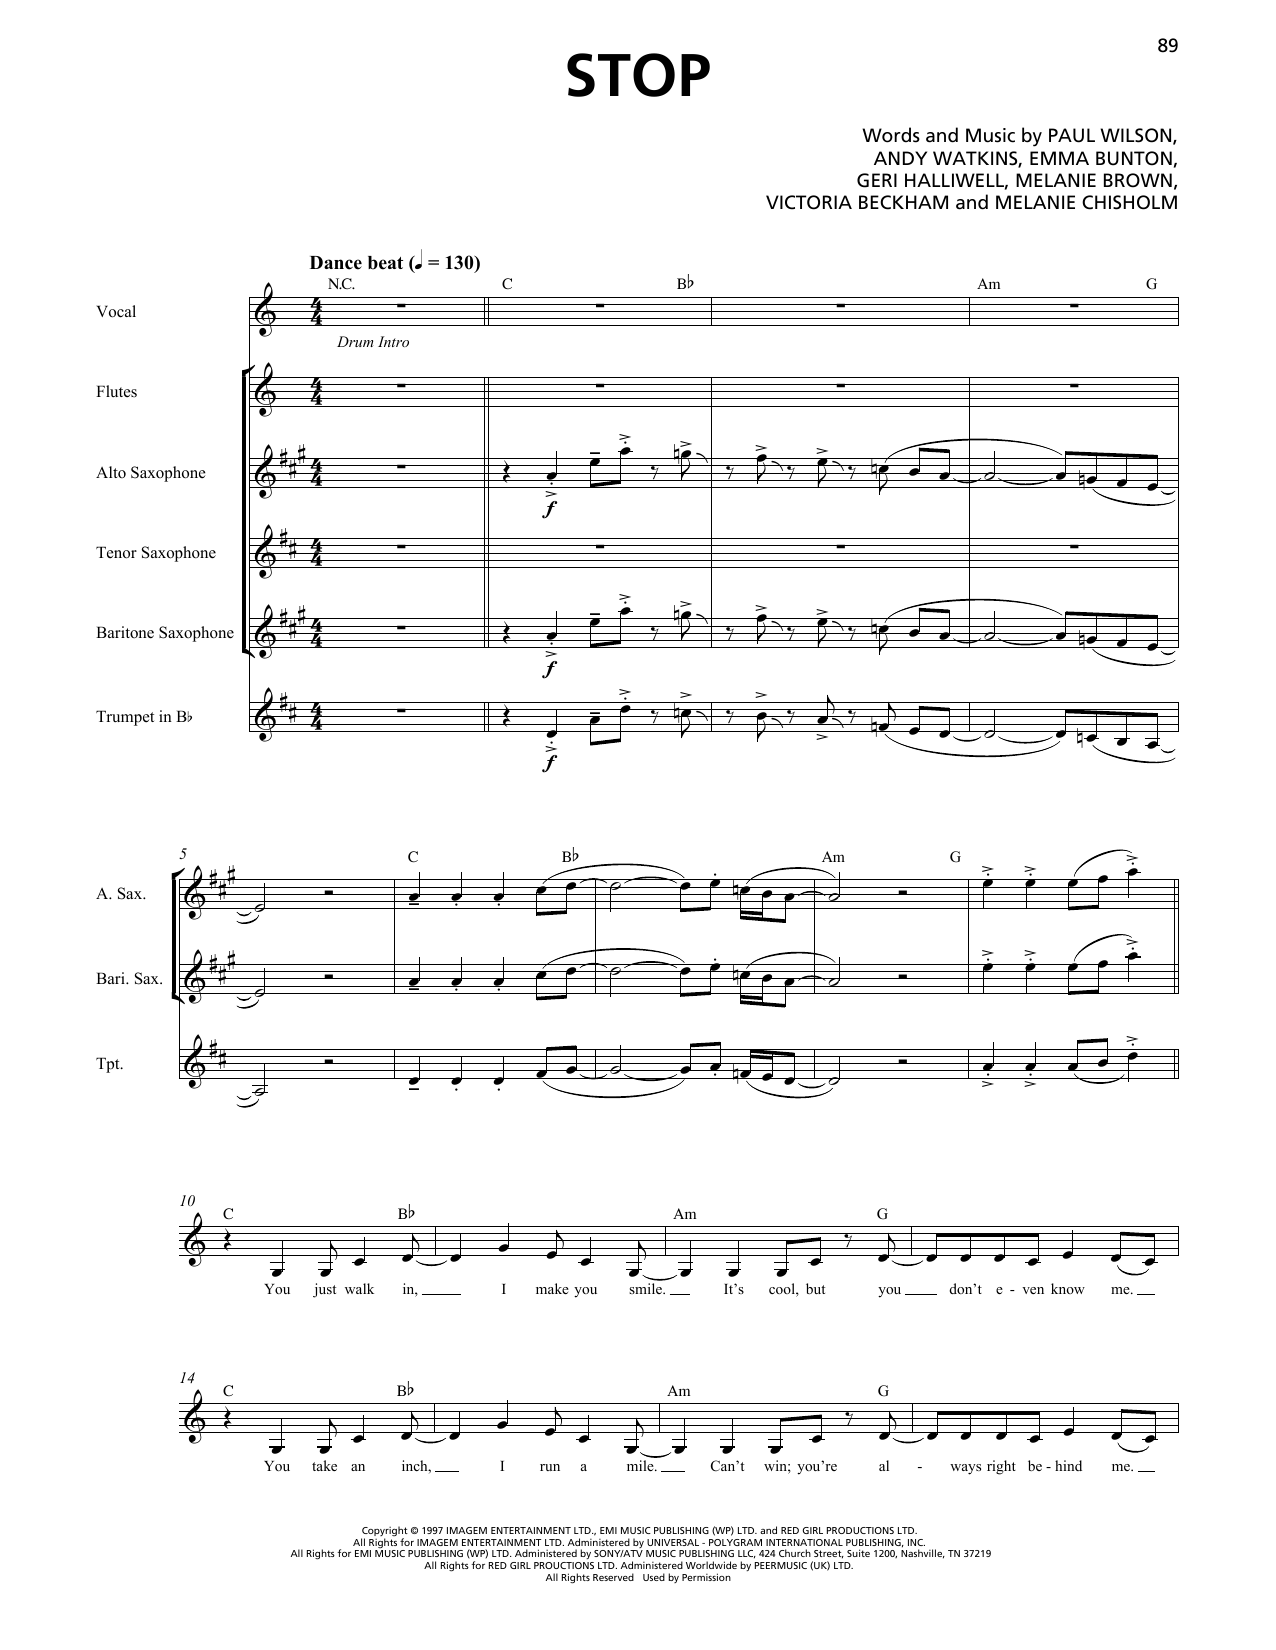 Spice Girls Stop (Horn Section) sheet music notes printable PDF score